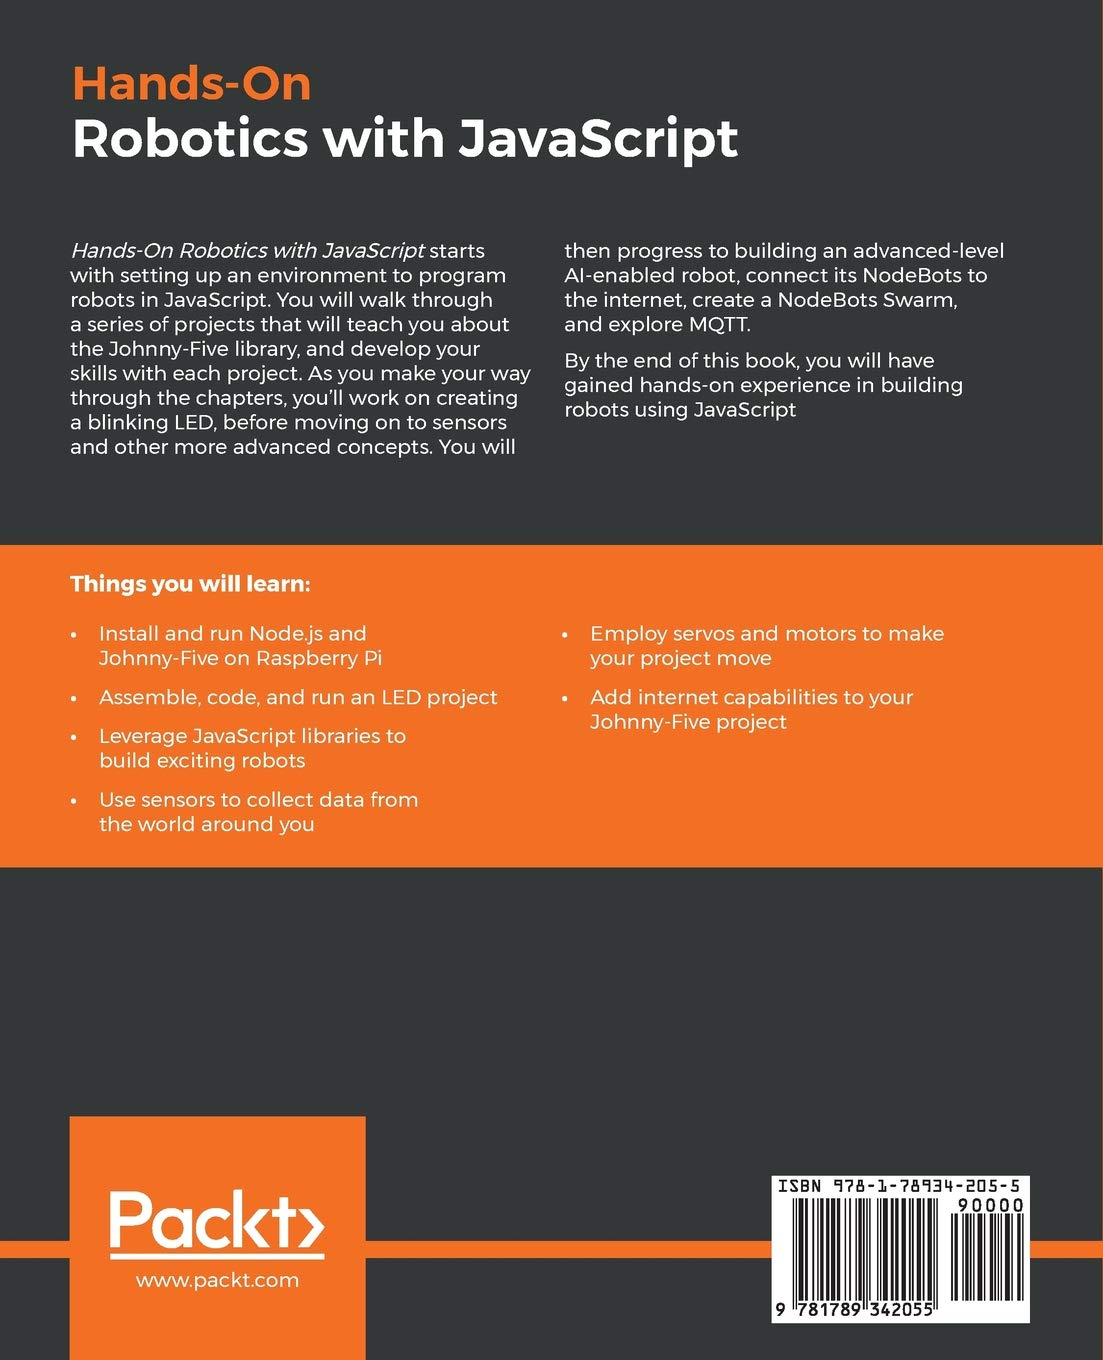 Buy Hands-On Robotics with JavaScript: Build robotic